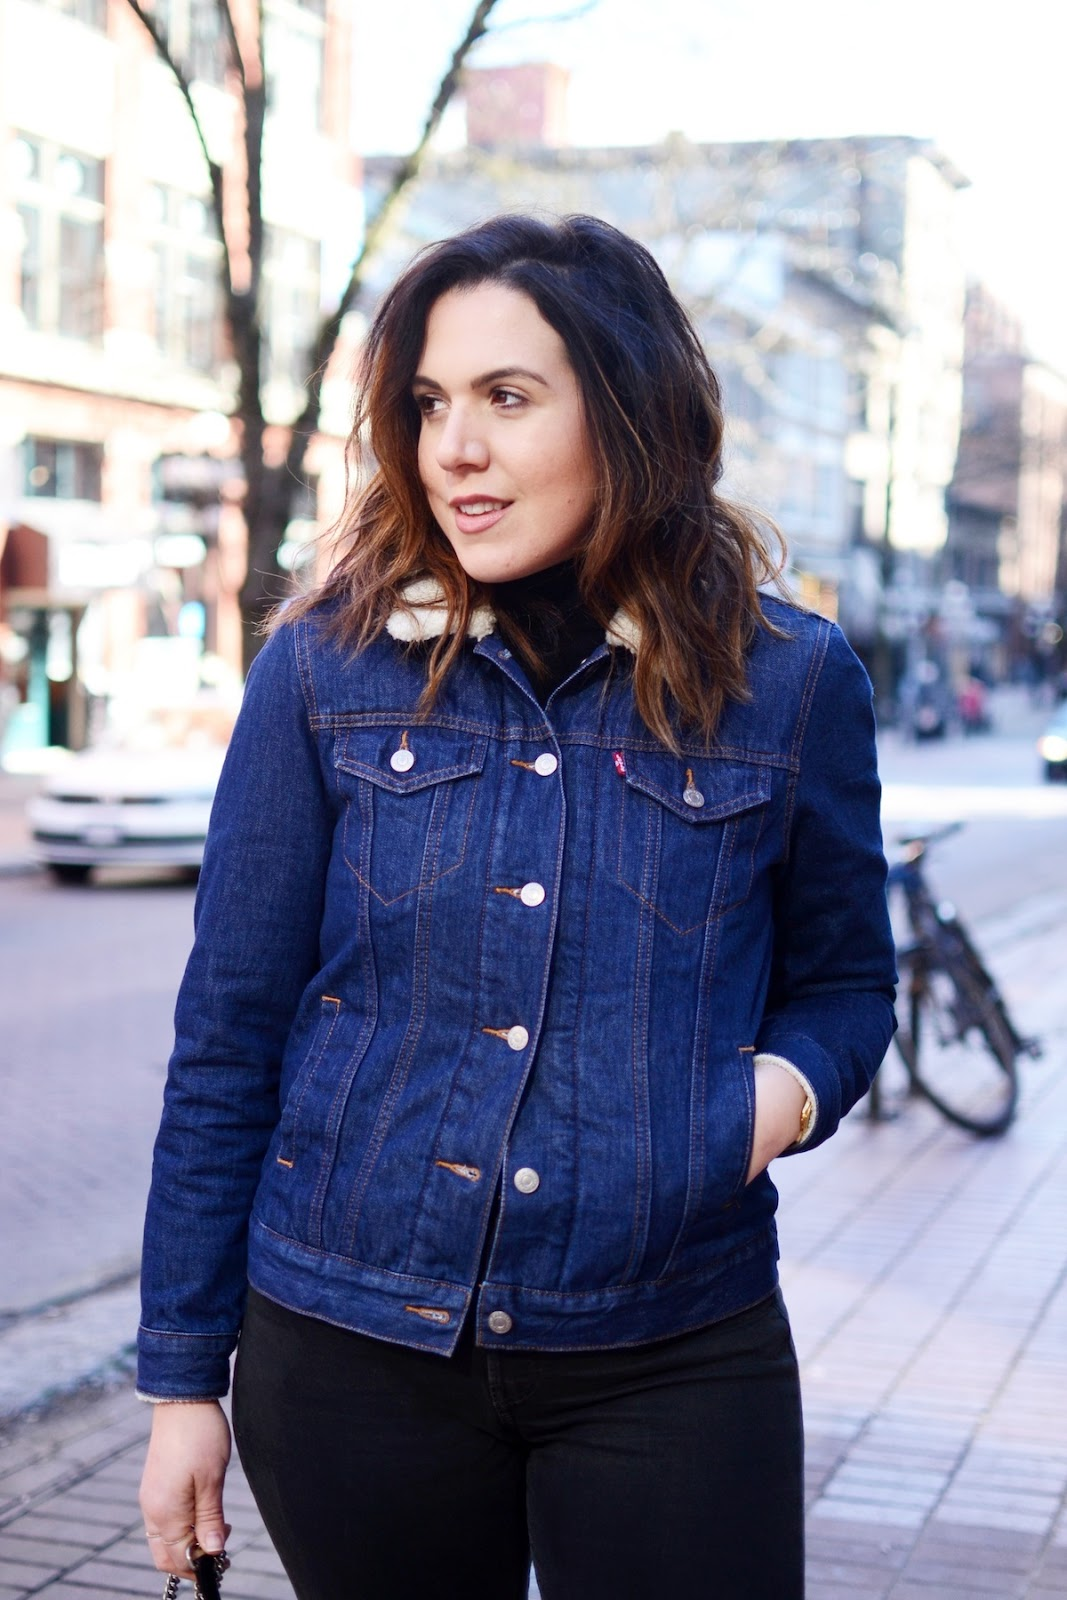 Levi's denim jacket levi's wedgie jeans outfit vancouver fashion blogger